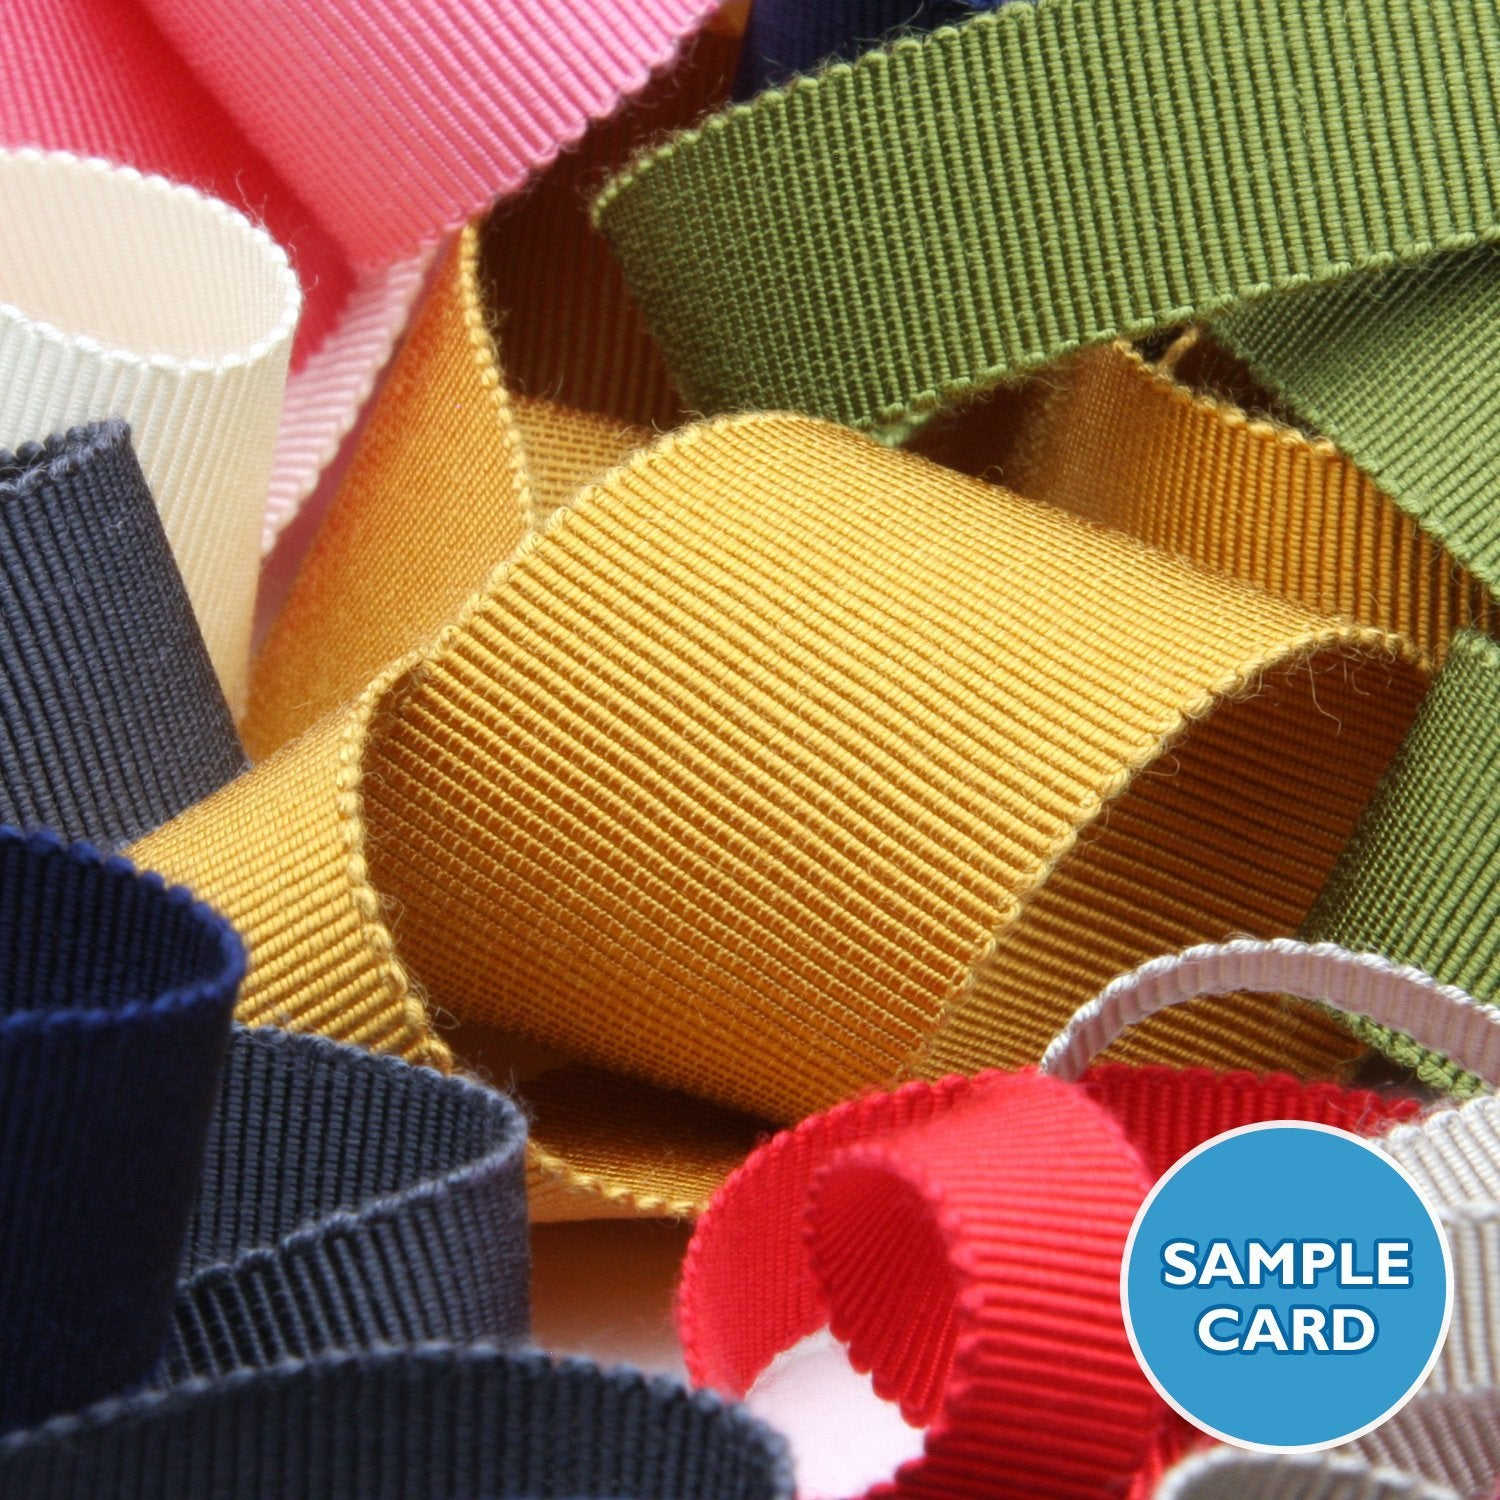 FUJIYAMA RIBBON Sample Card Rayon Grosgrain Ribbon (FY-200)